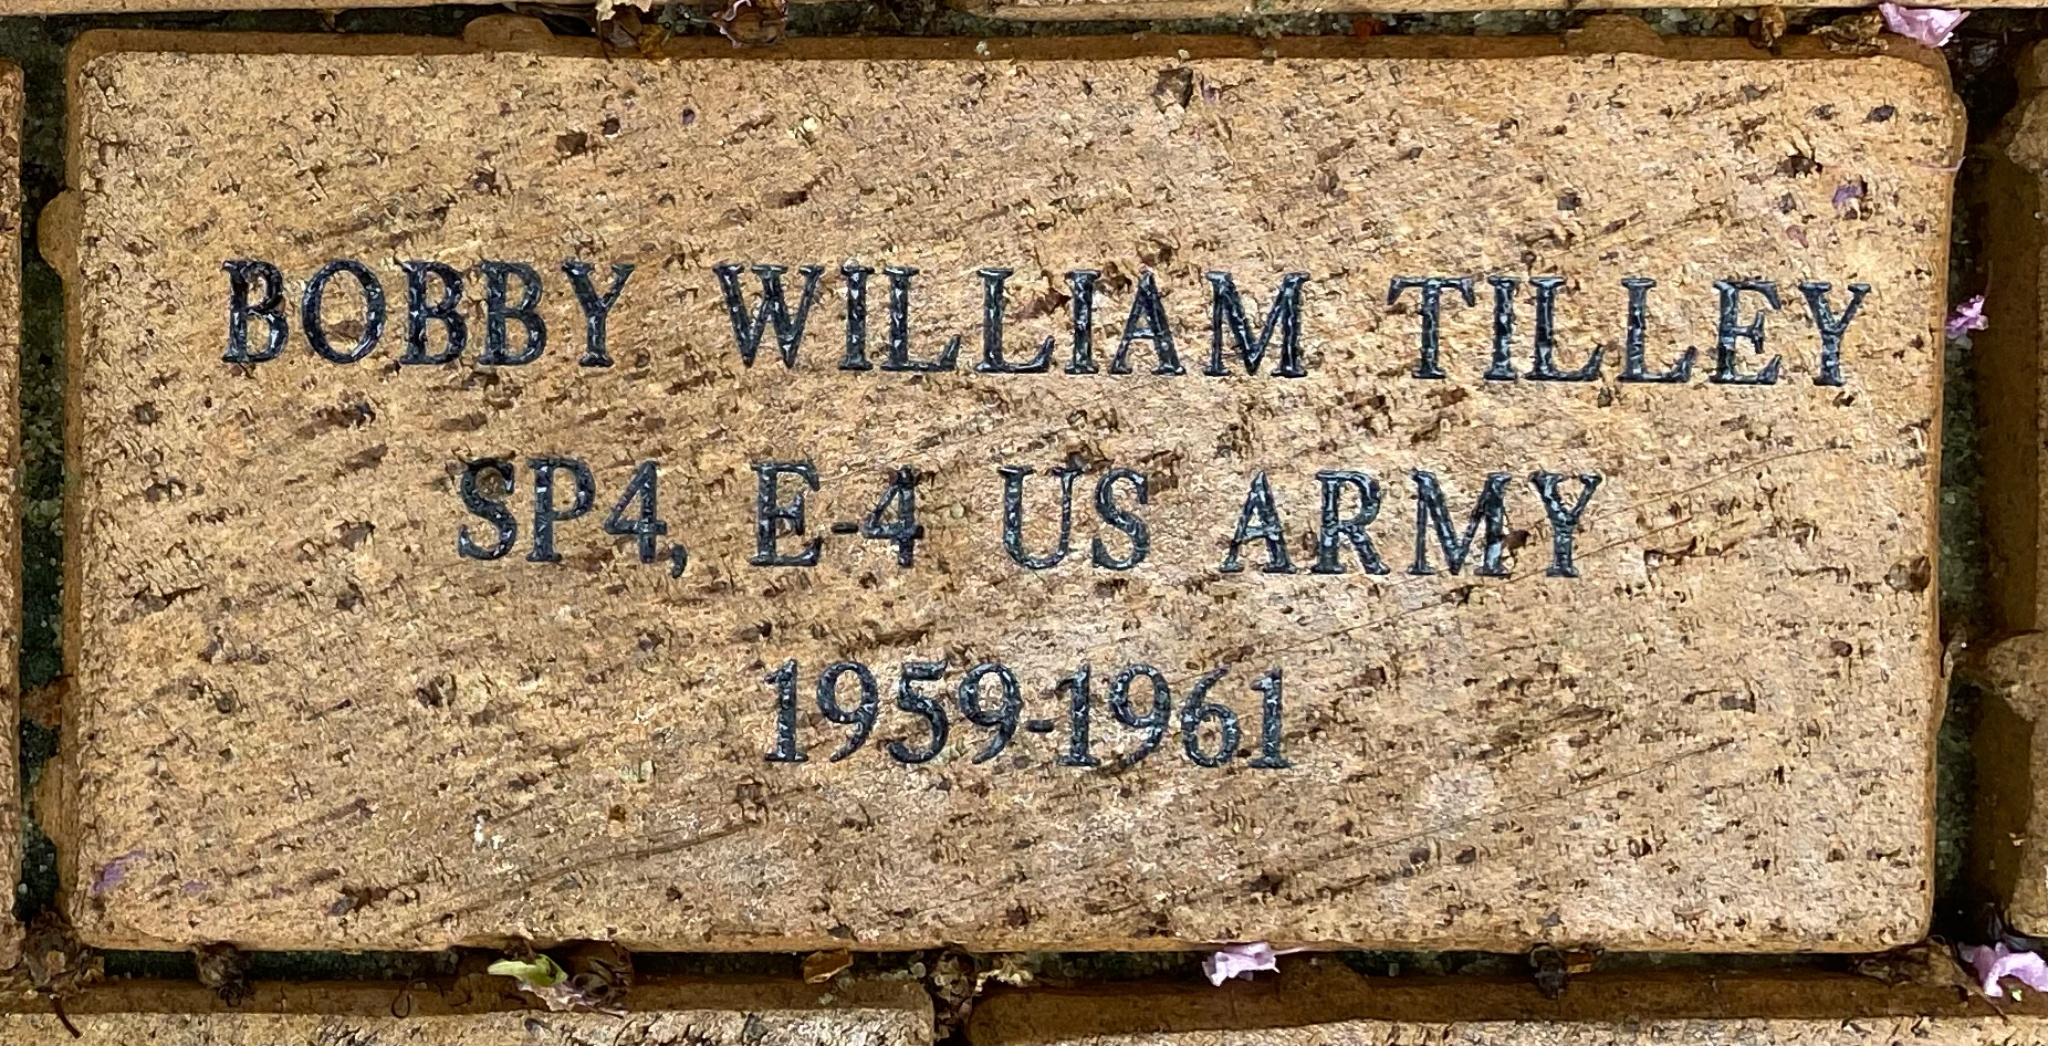 BOBBY WILLIAM TILLEY SP4, E-4 US ARMY 1959-1961